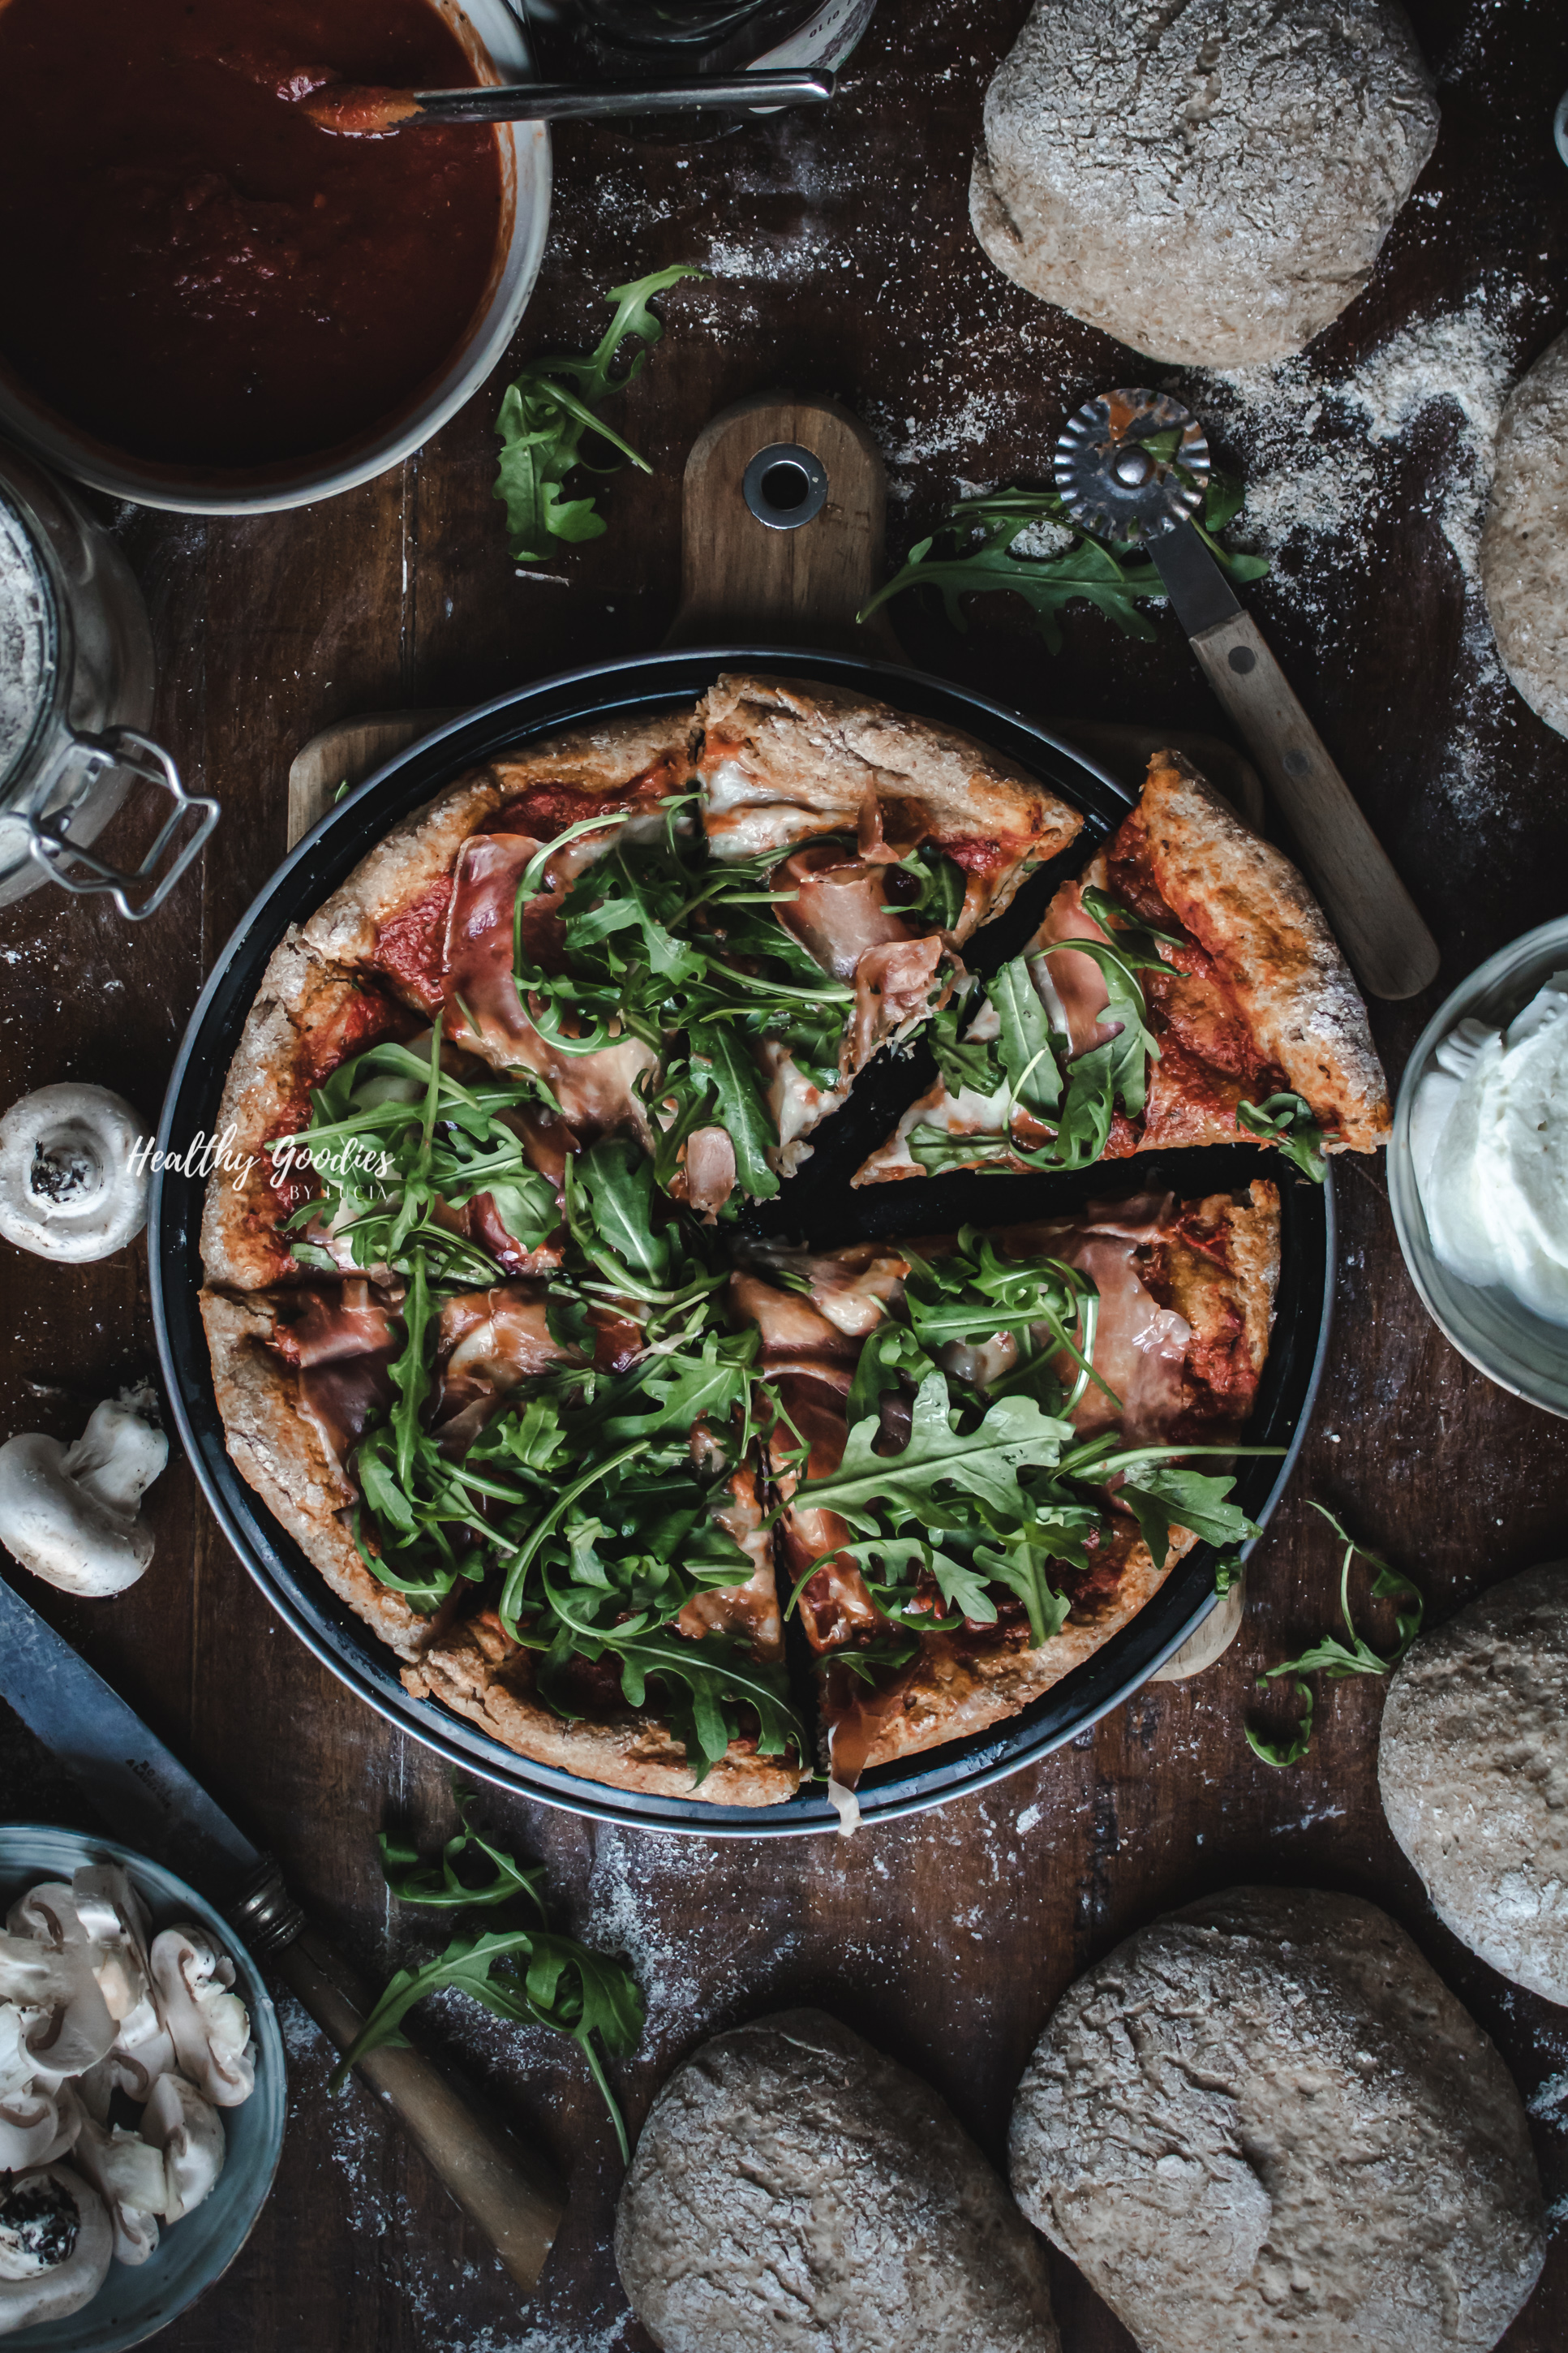 whole wheat pizza | Healthy Goodies by Lucia Marecak-0638